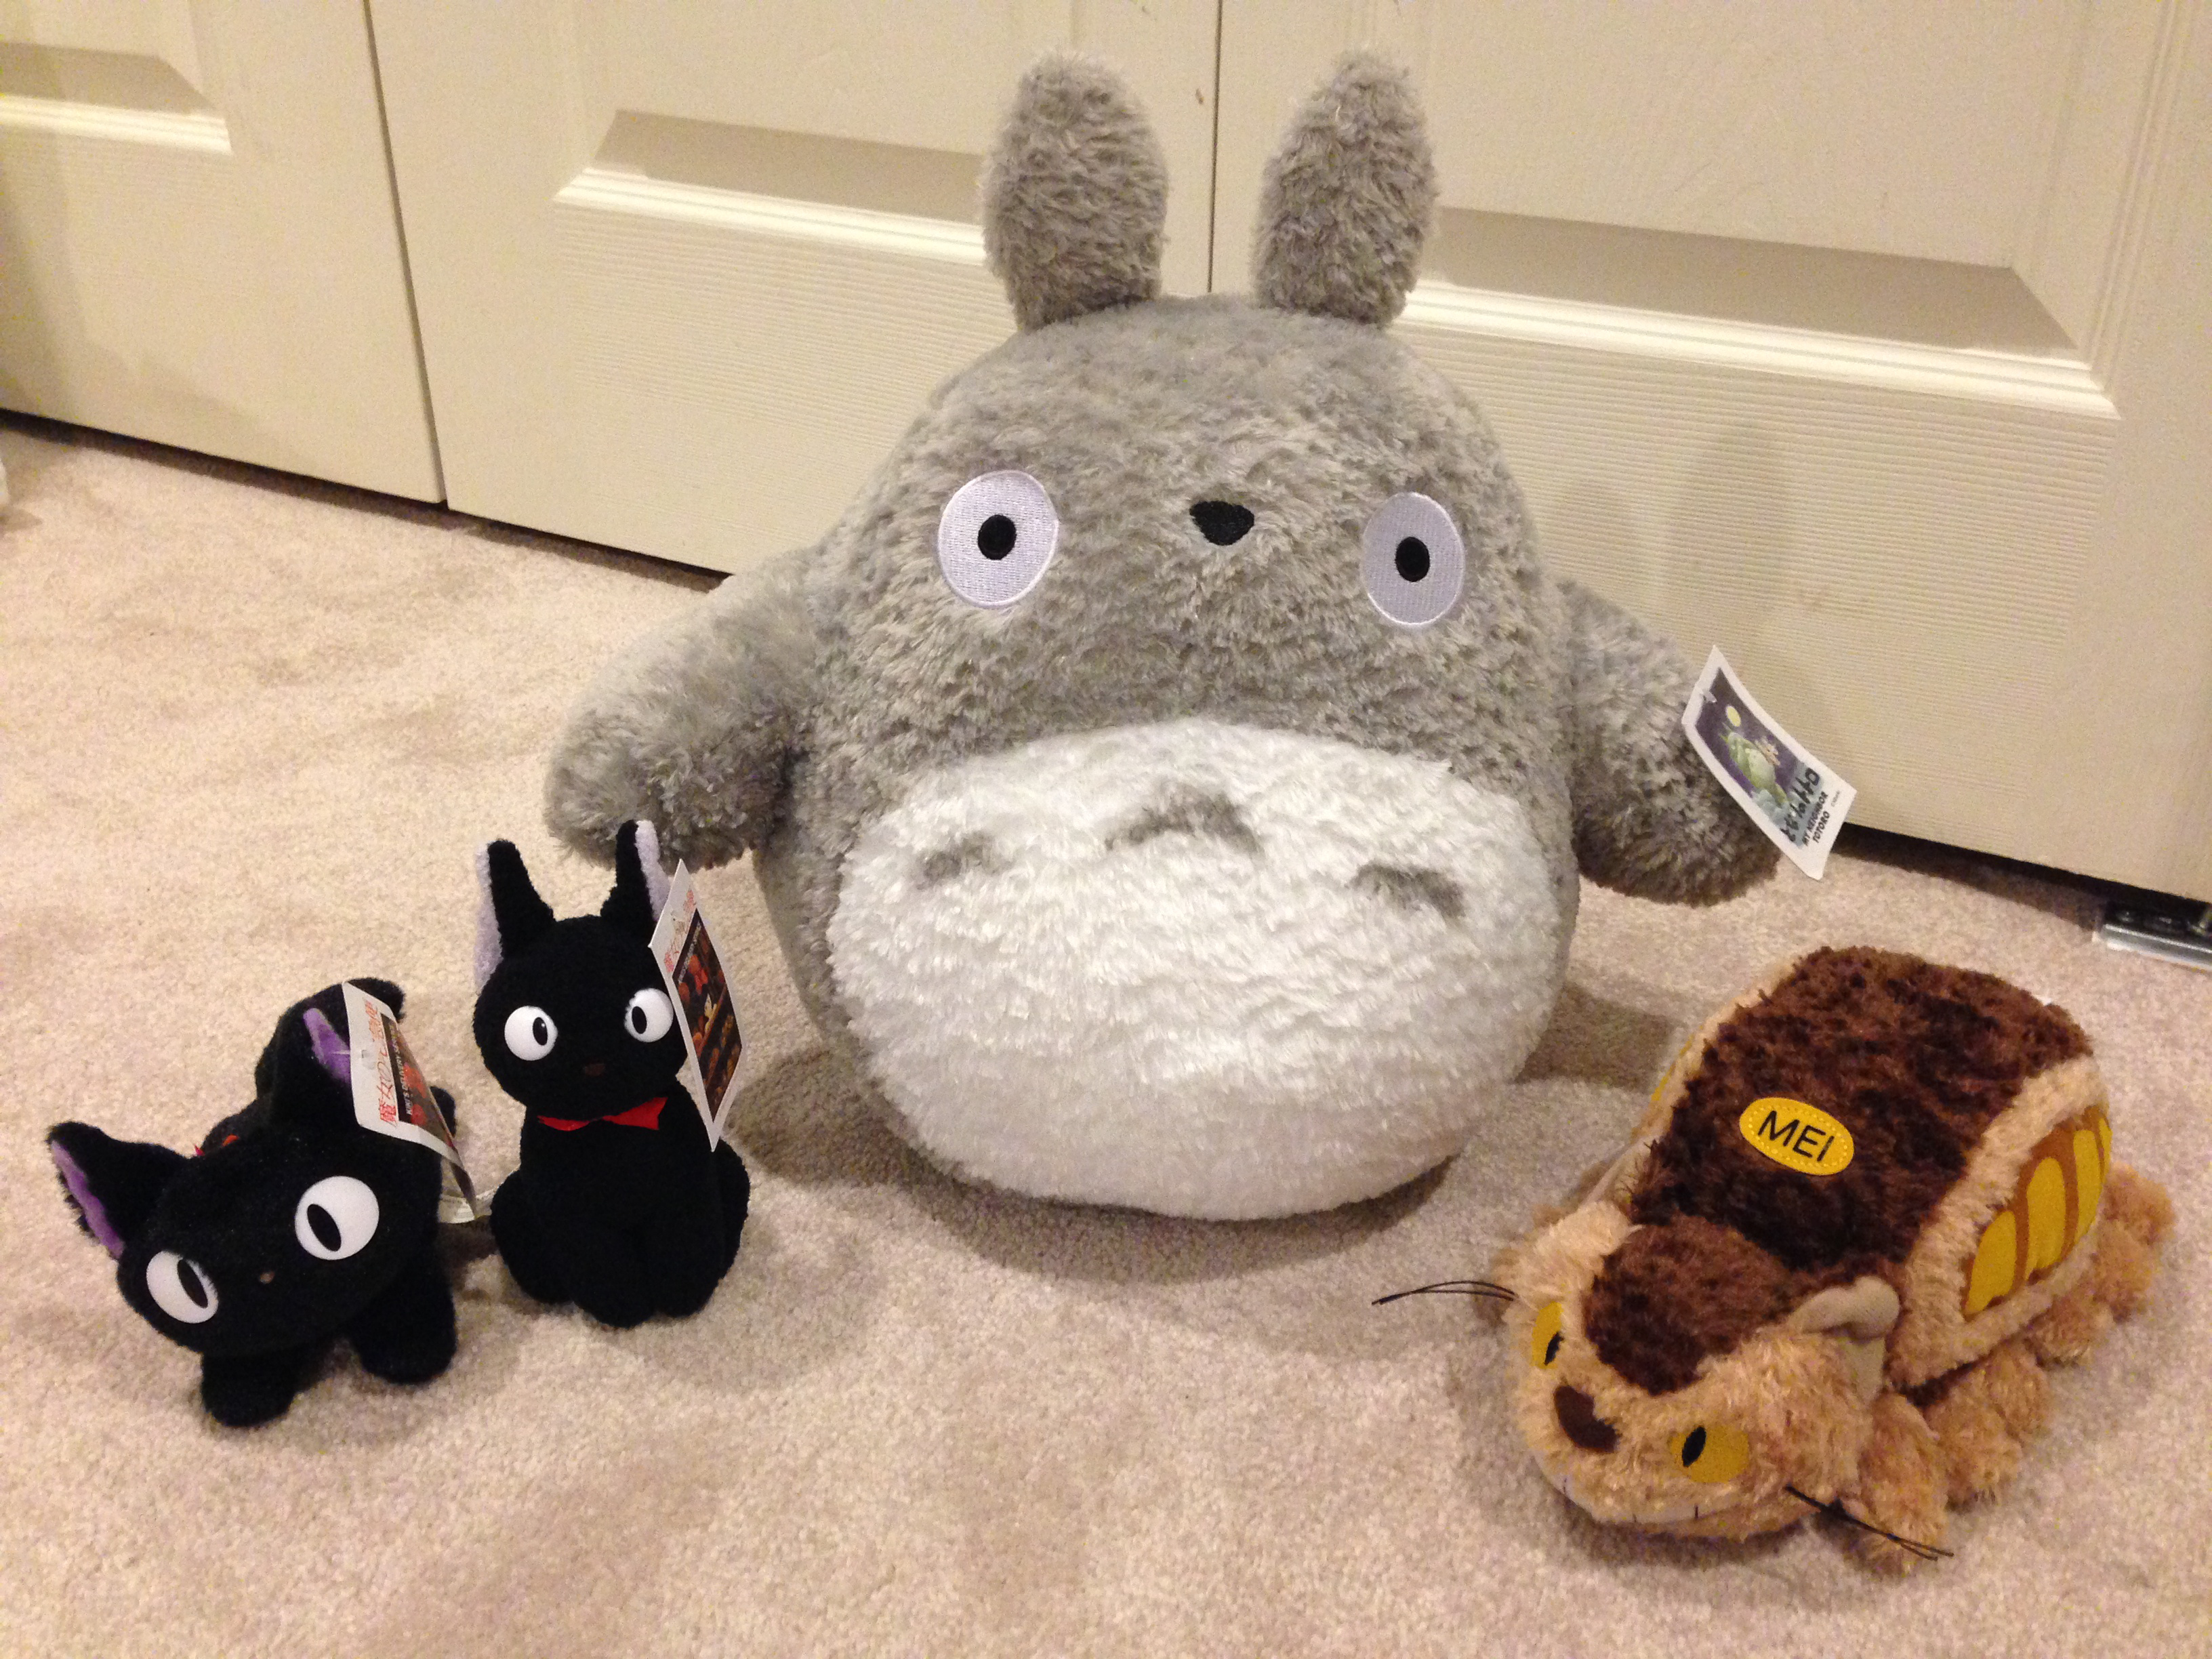 My Neighbor Totoro Roar: Studio Ghibli Plush Toys From Gund